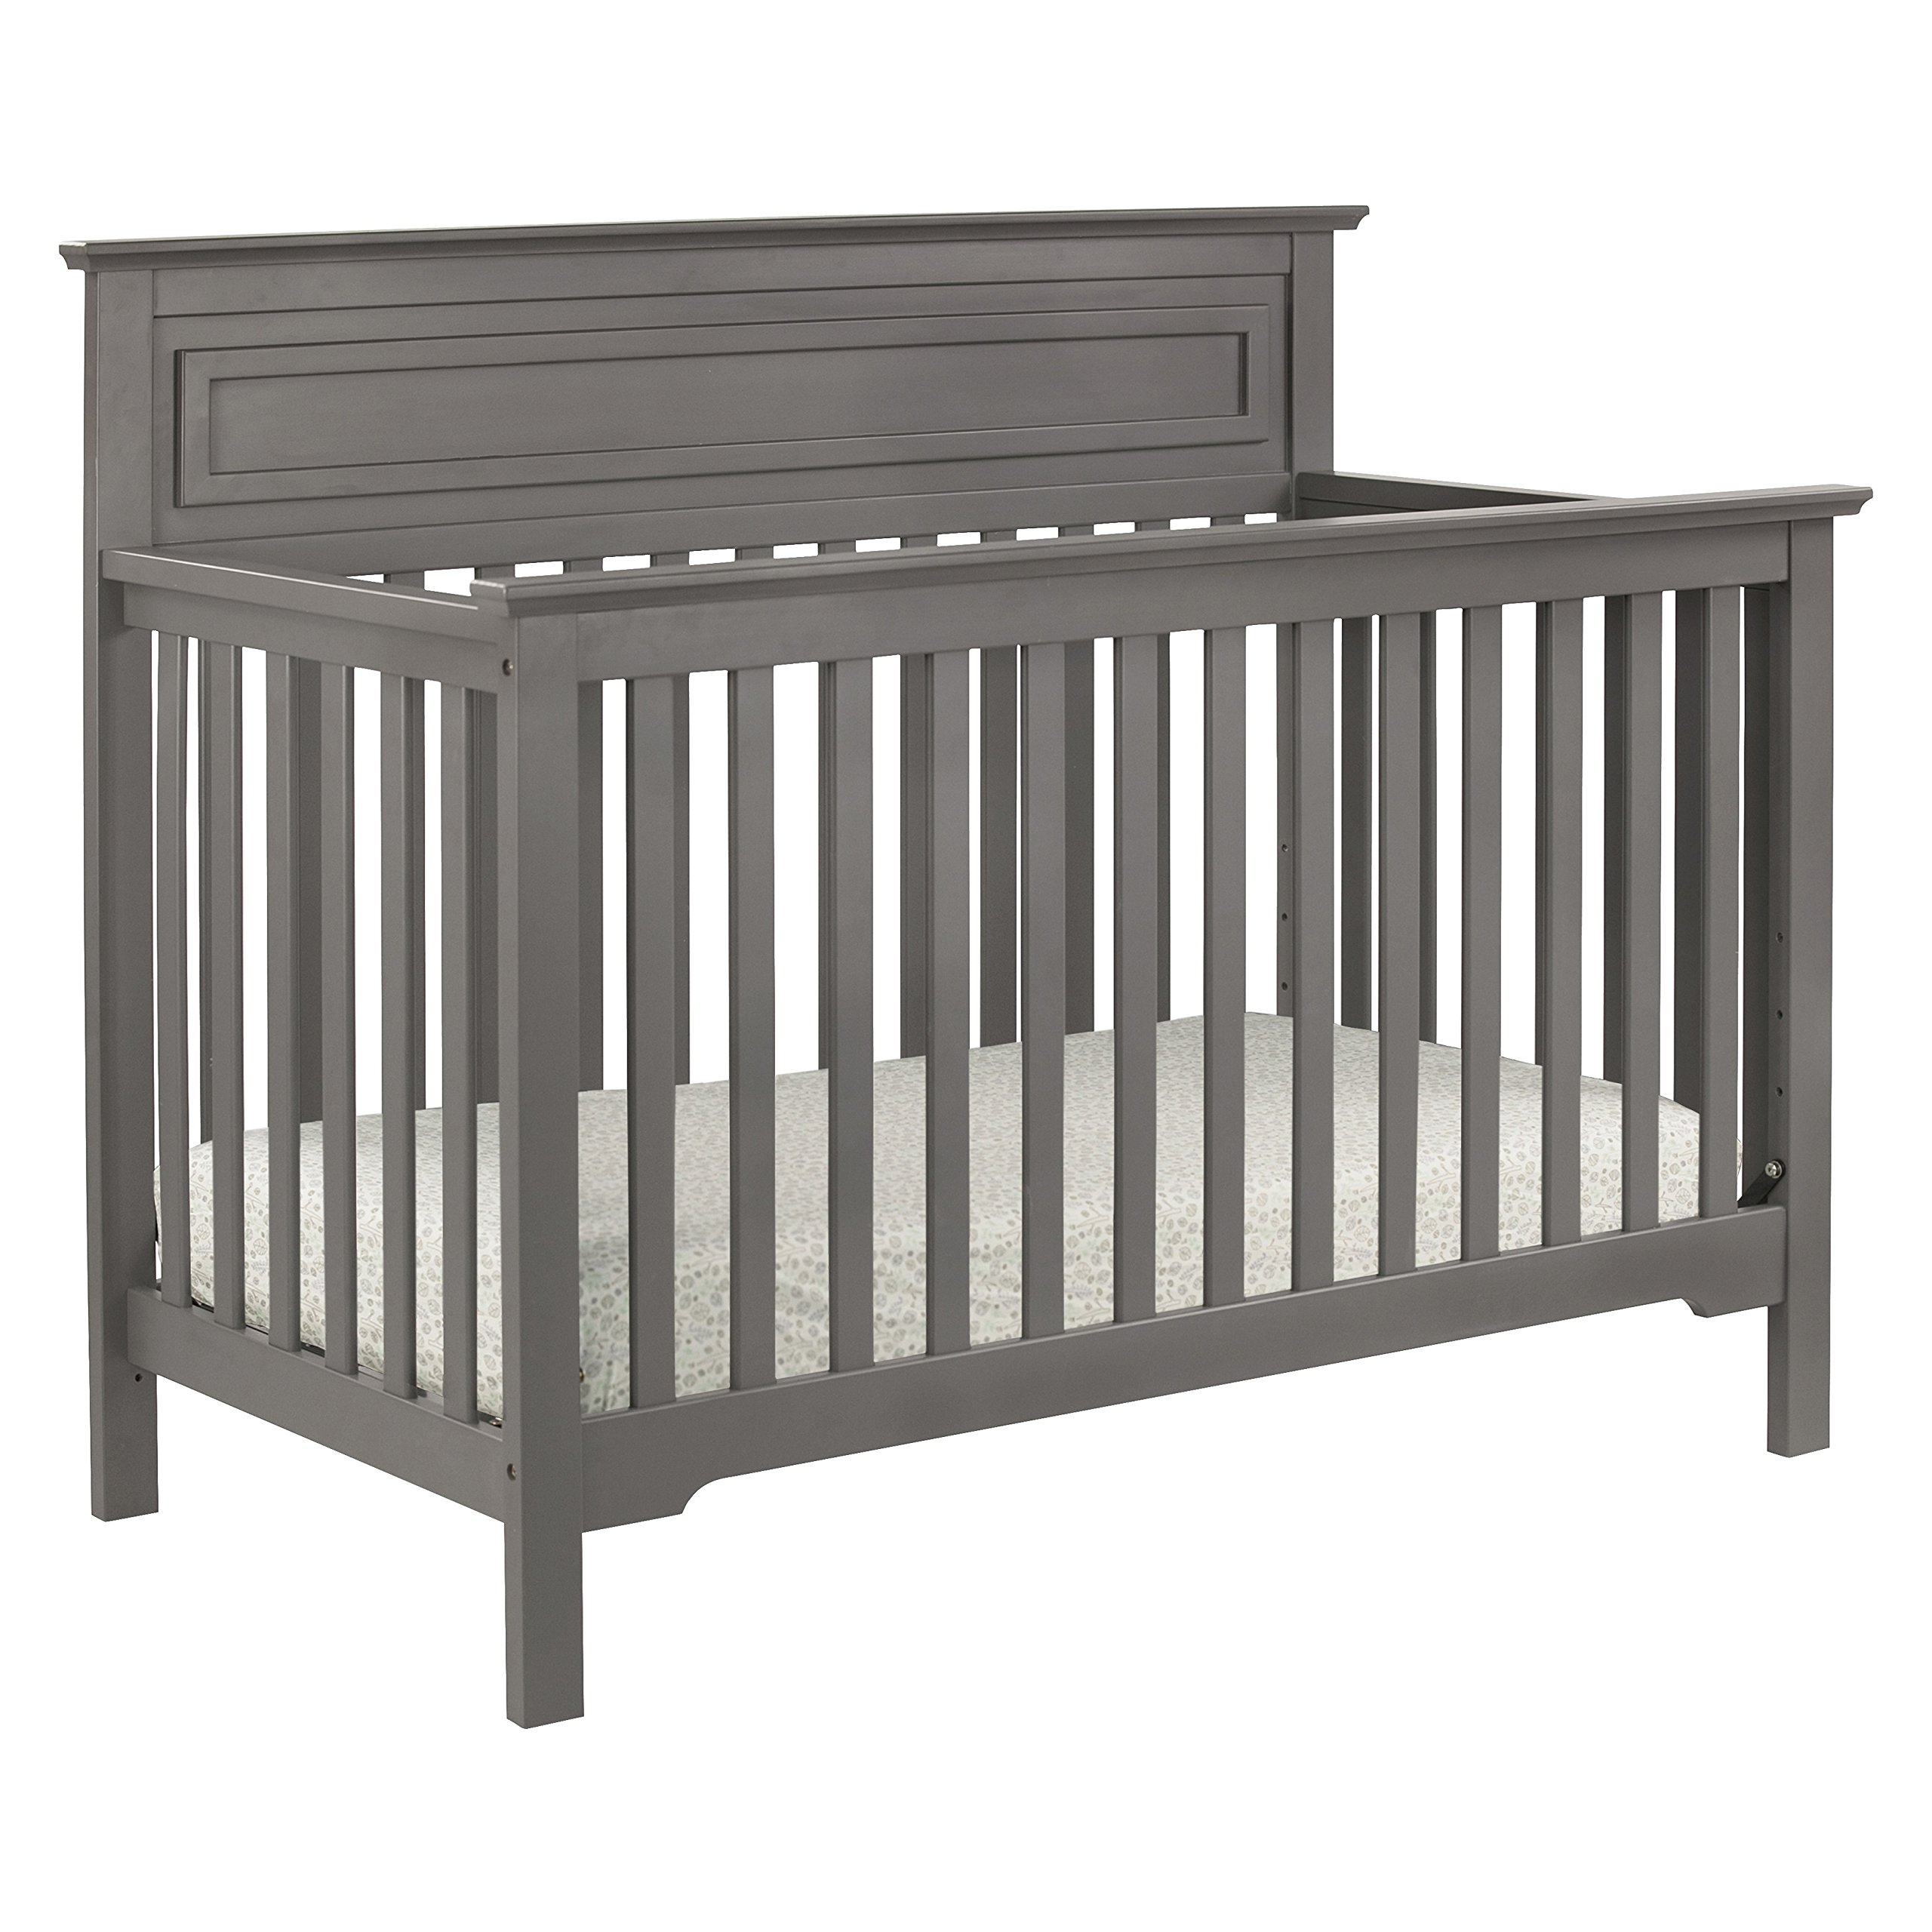 baby furniture converts to toddler bed daybed and full size bed ebay. Black Bedroom Furniture Sets. Home Design Ideas